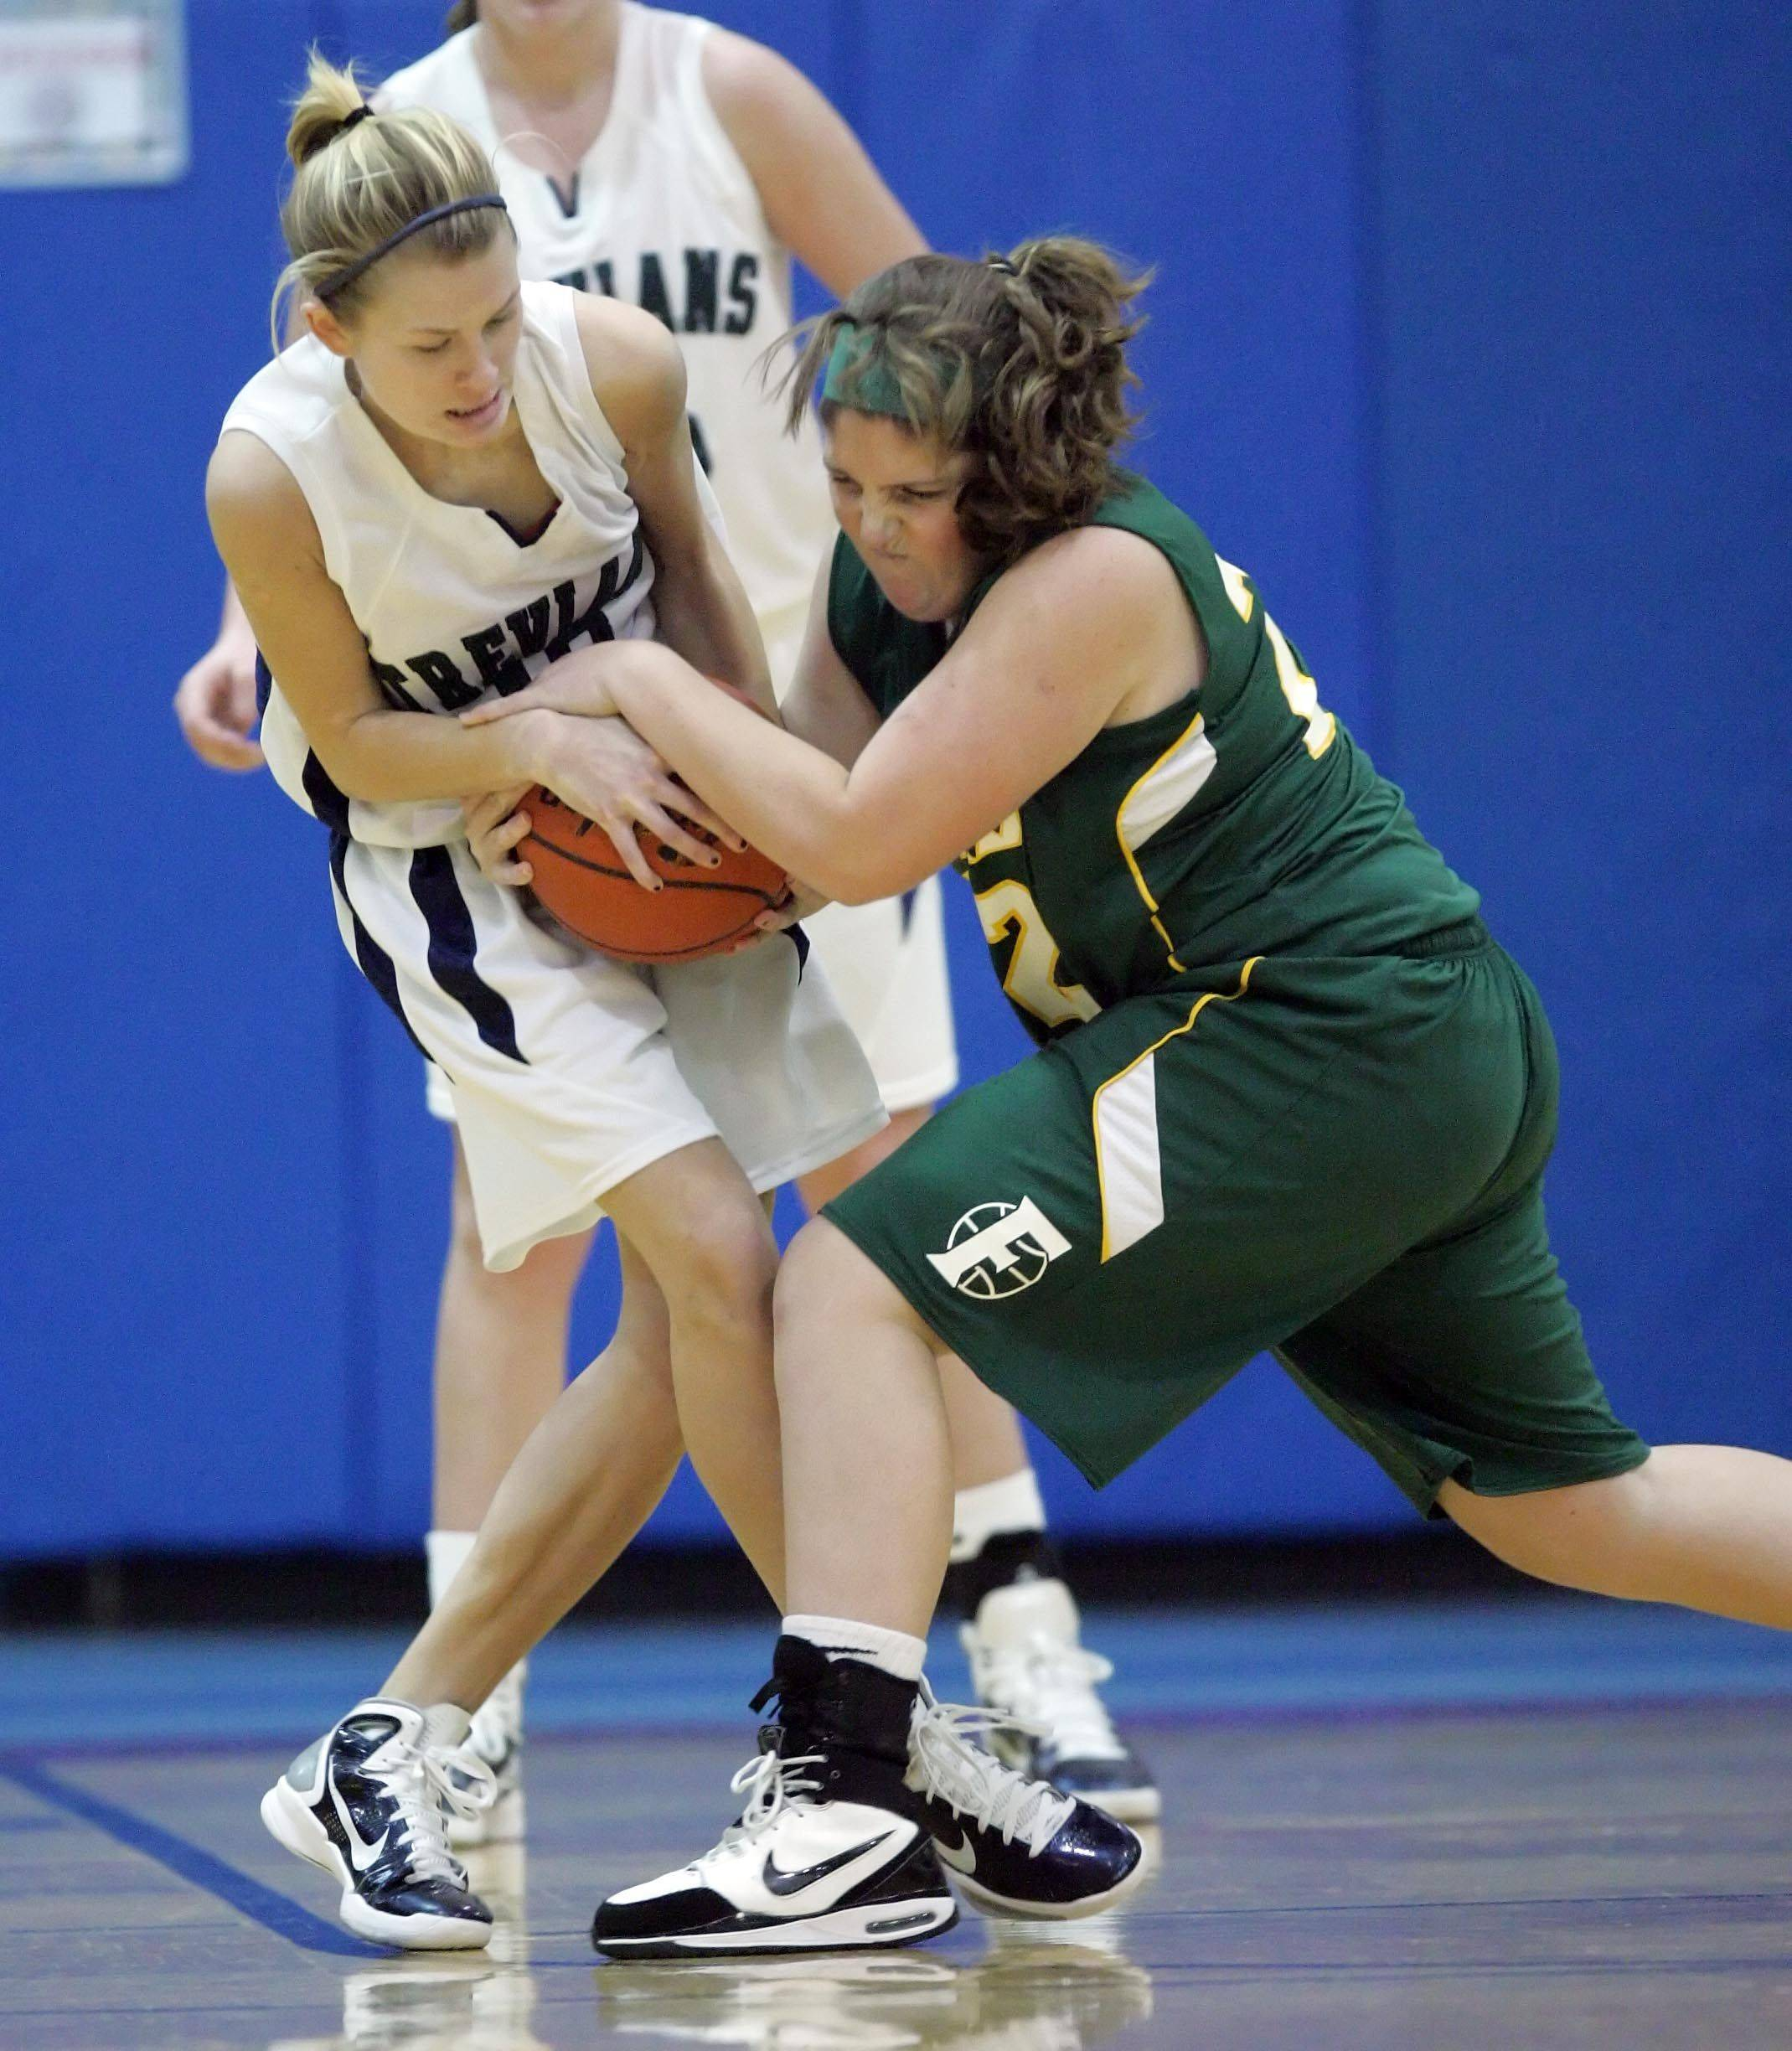 New Trier's Meg Rosinski, 10, wrestles Fremd's Megan Horn, 22, during their Charger Classic girls basketball game in Carpentersville Thursday.